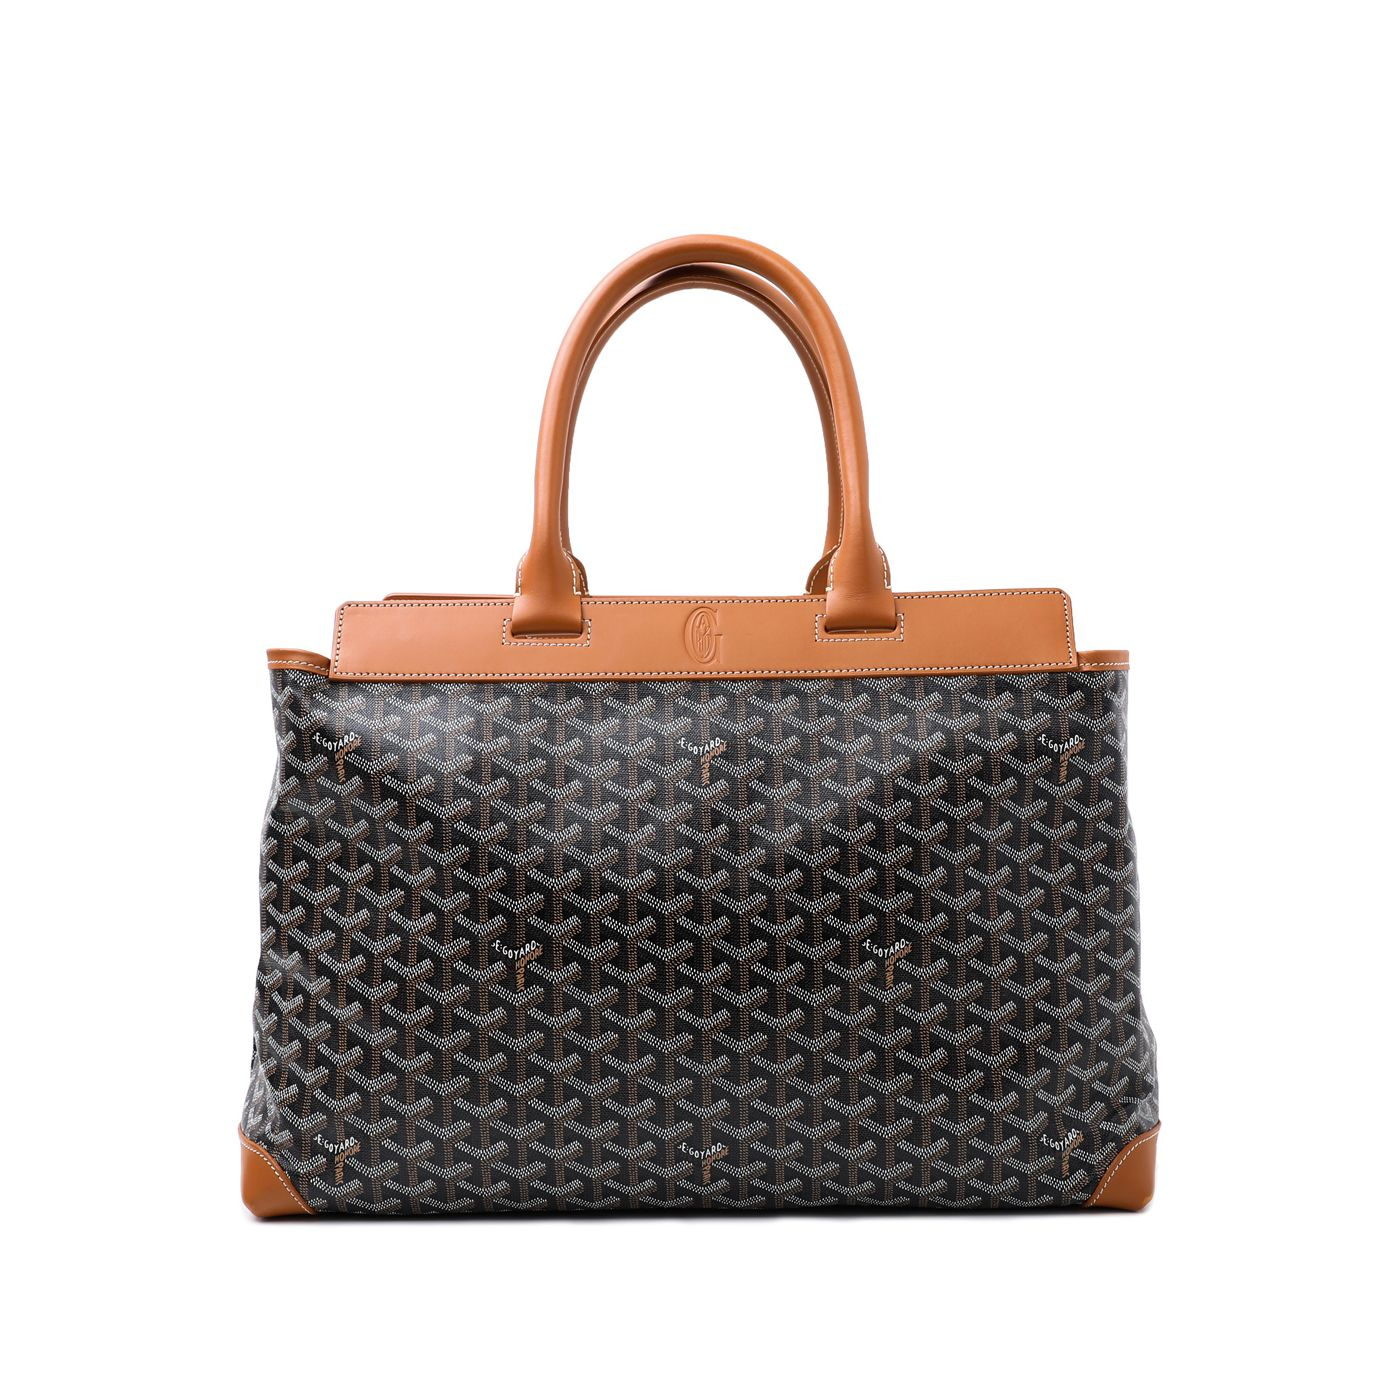 Goyard Tan Goyardine Bellechasse Biaude Bag